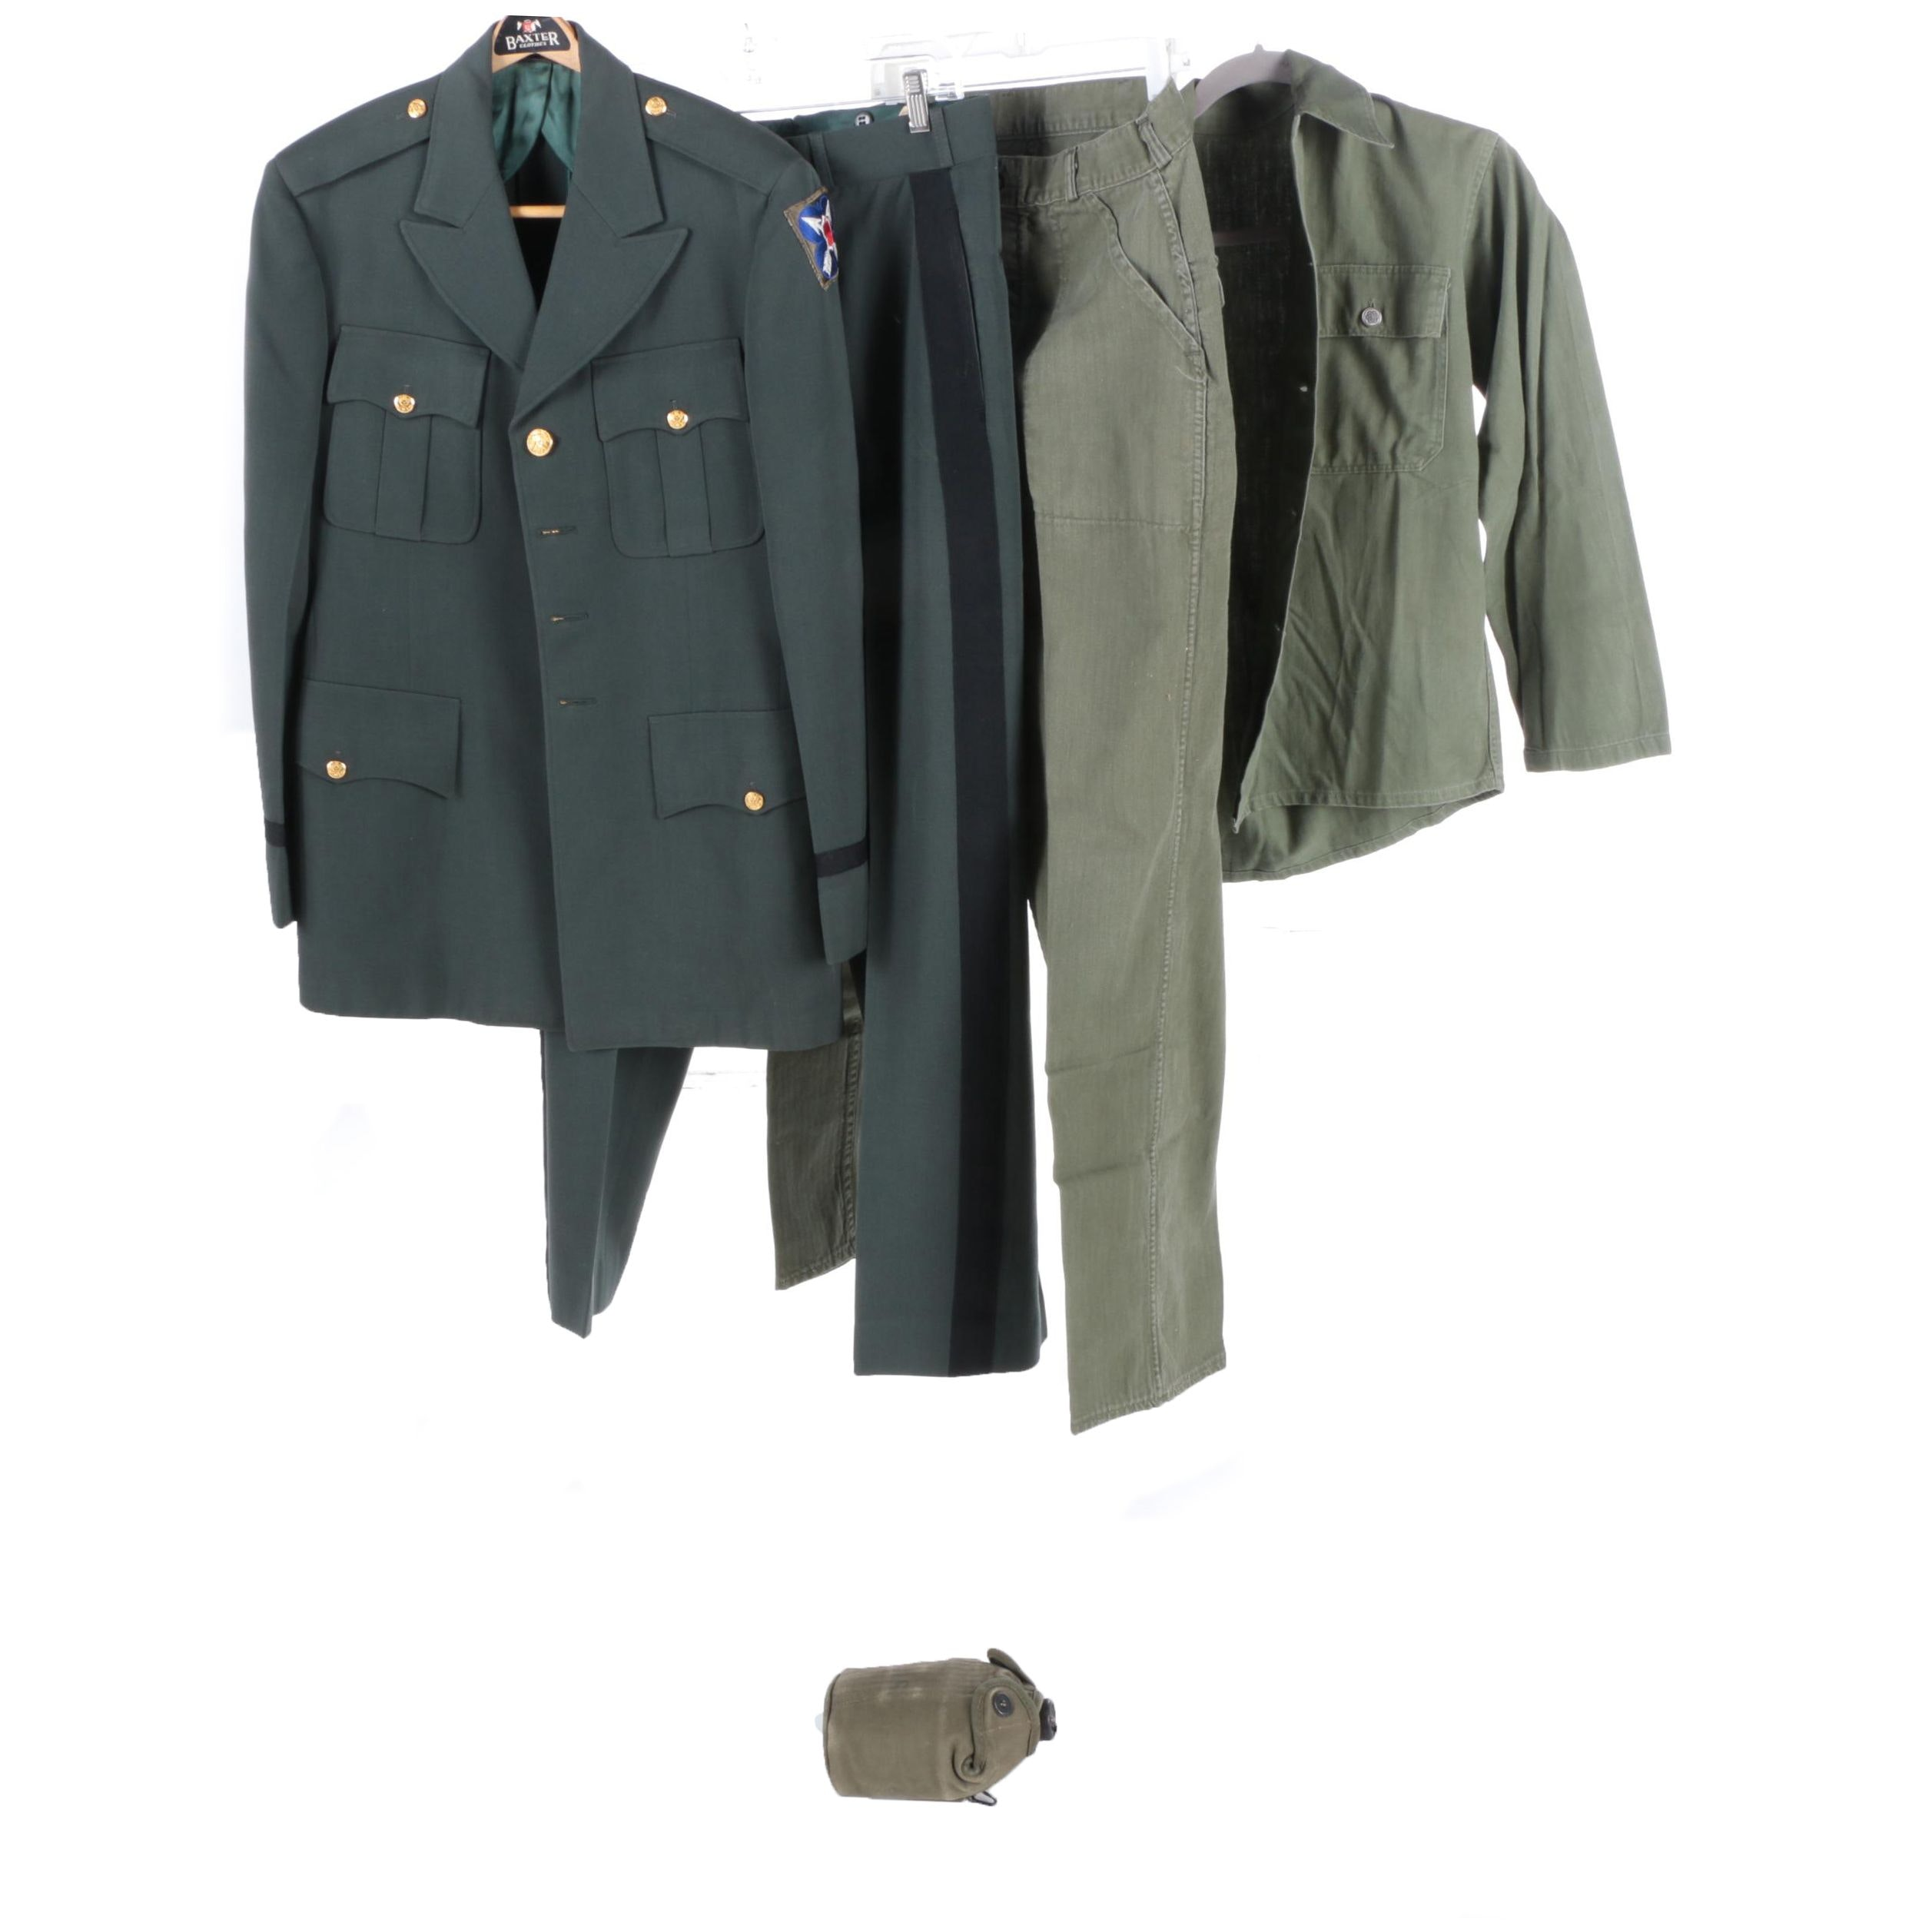 U.S. Army Officer Dress Uniform With WWII Patch, Field Outfit, and Canteen